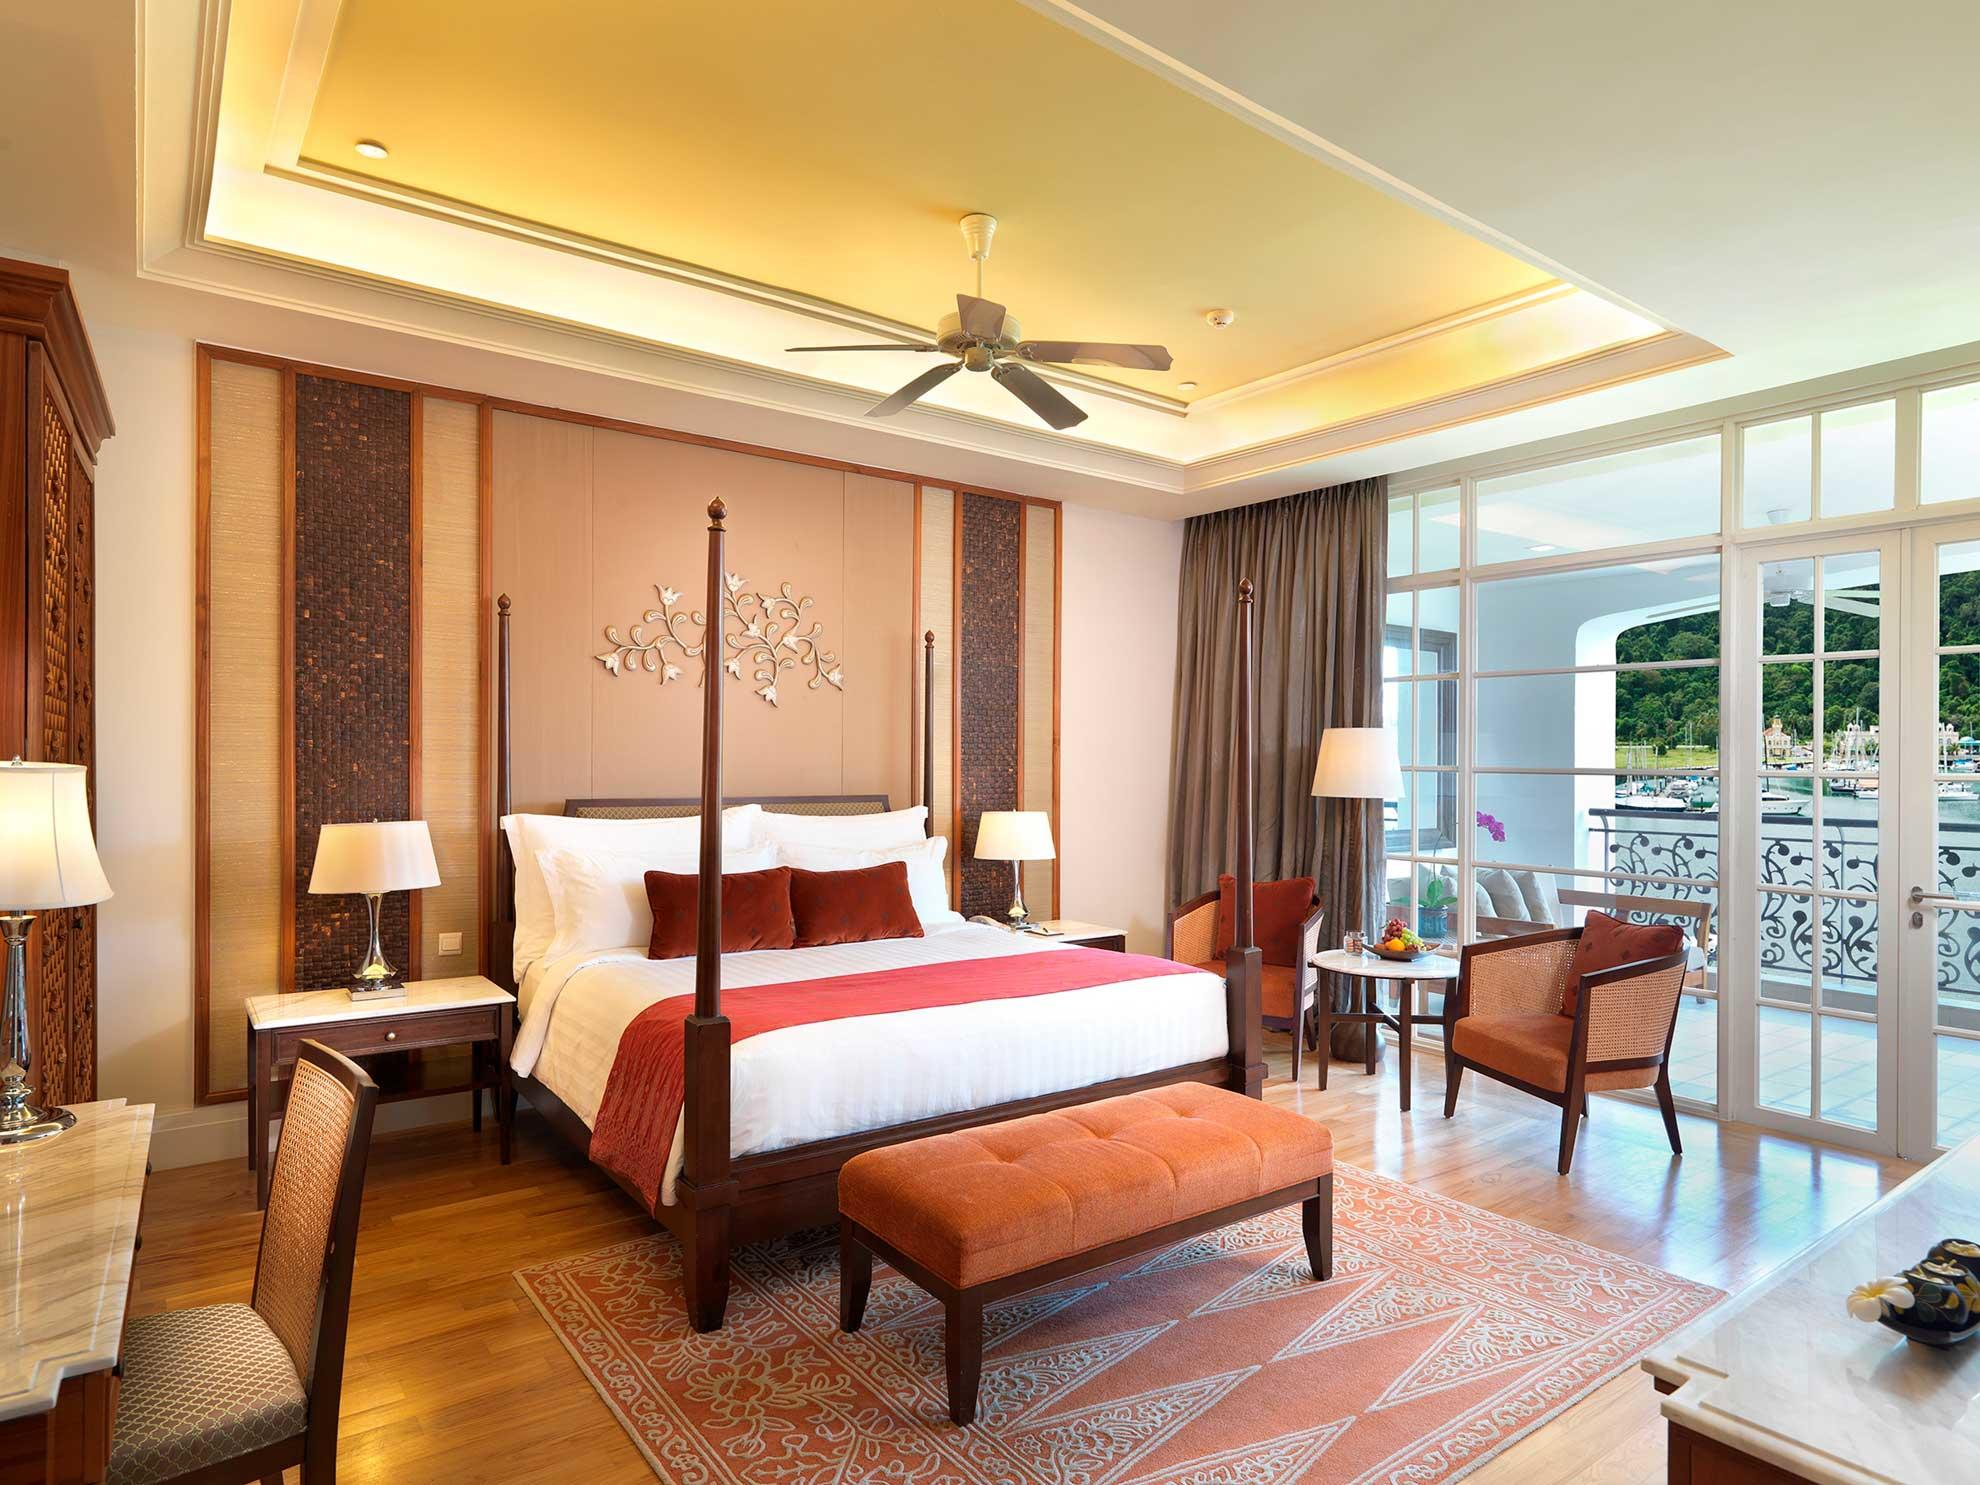 Spacious hotel room with king bed and private balcony